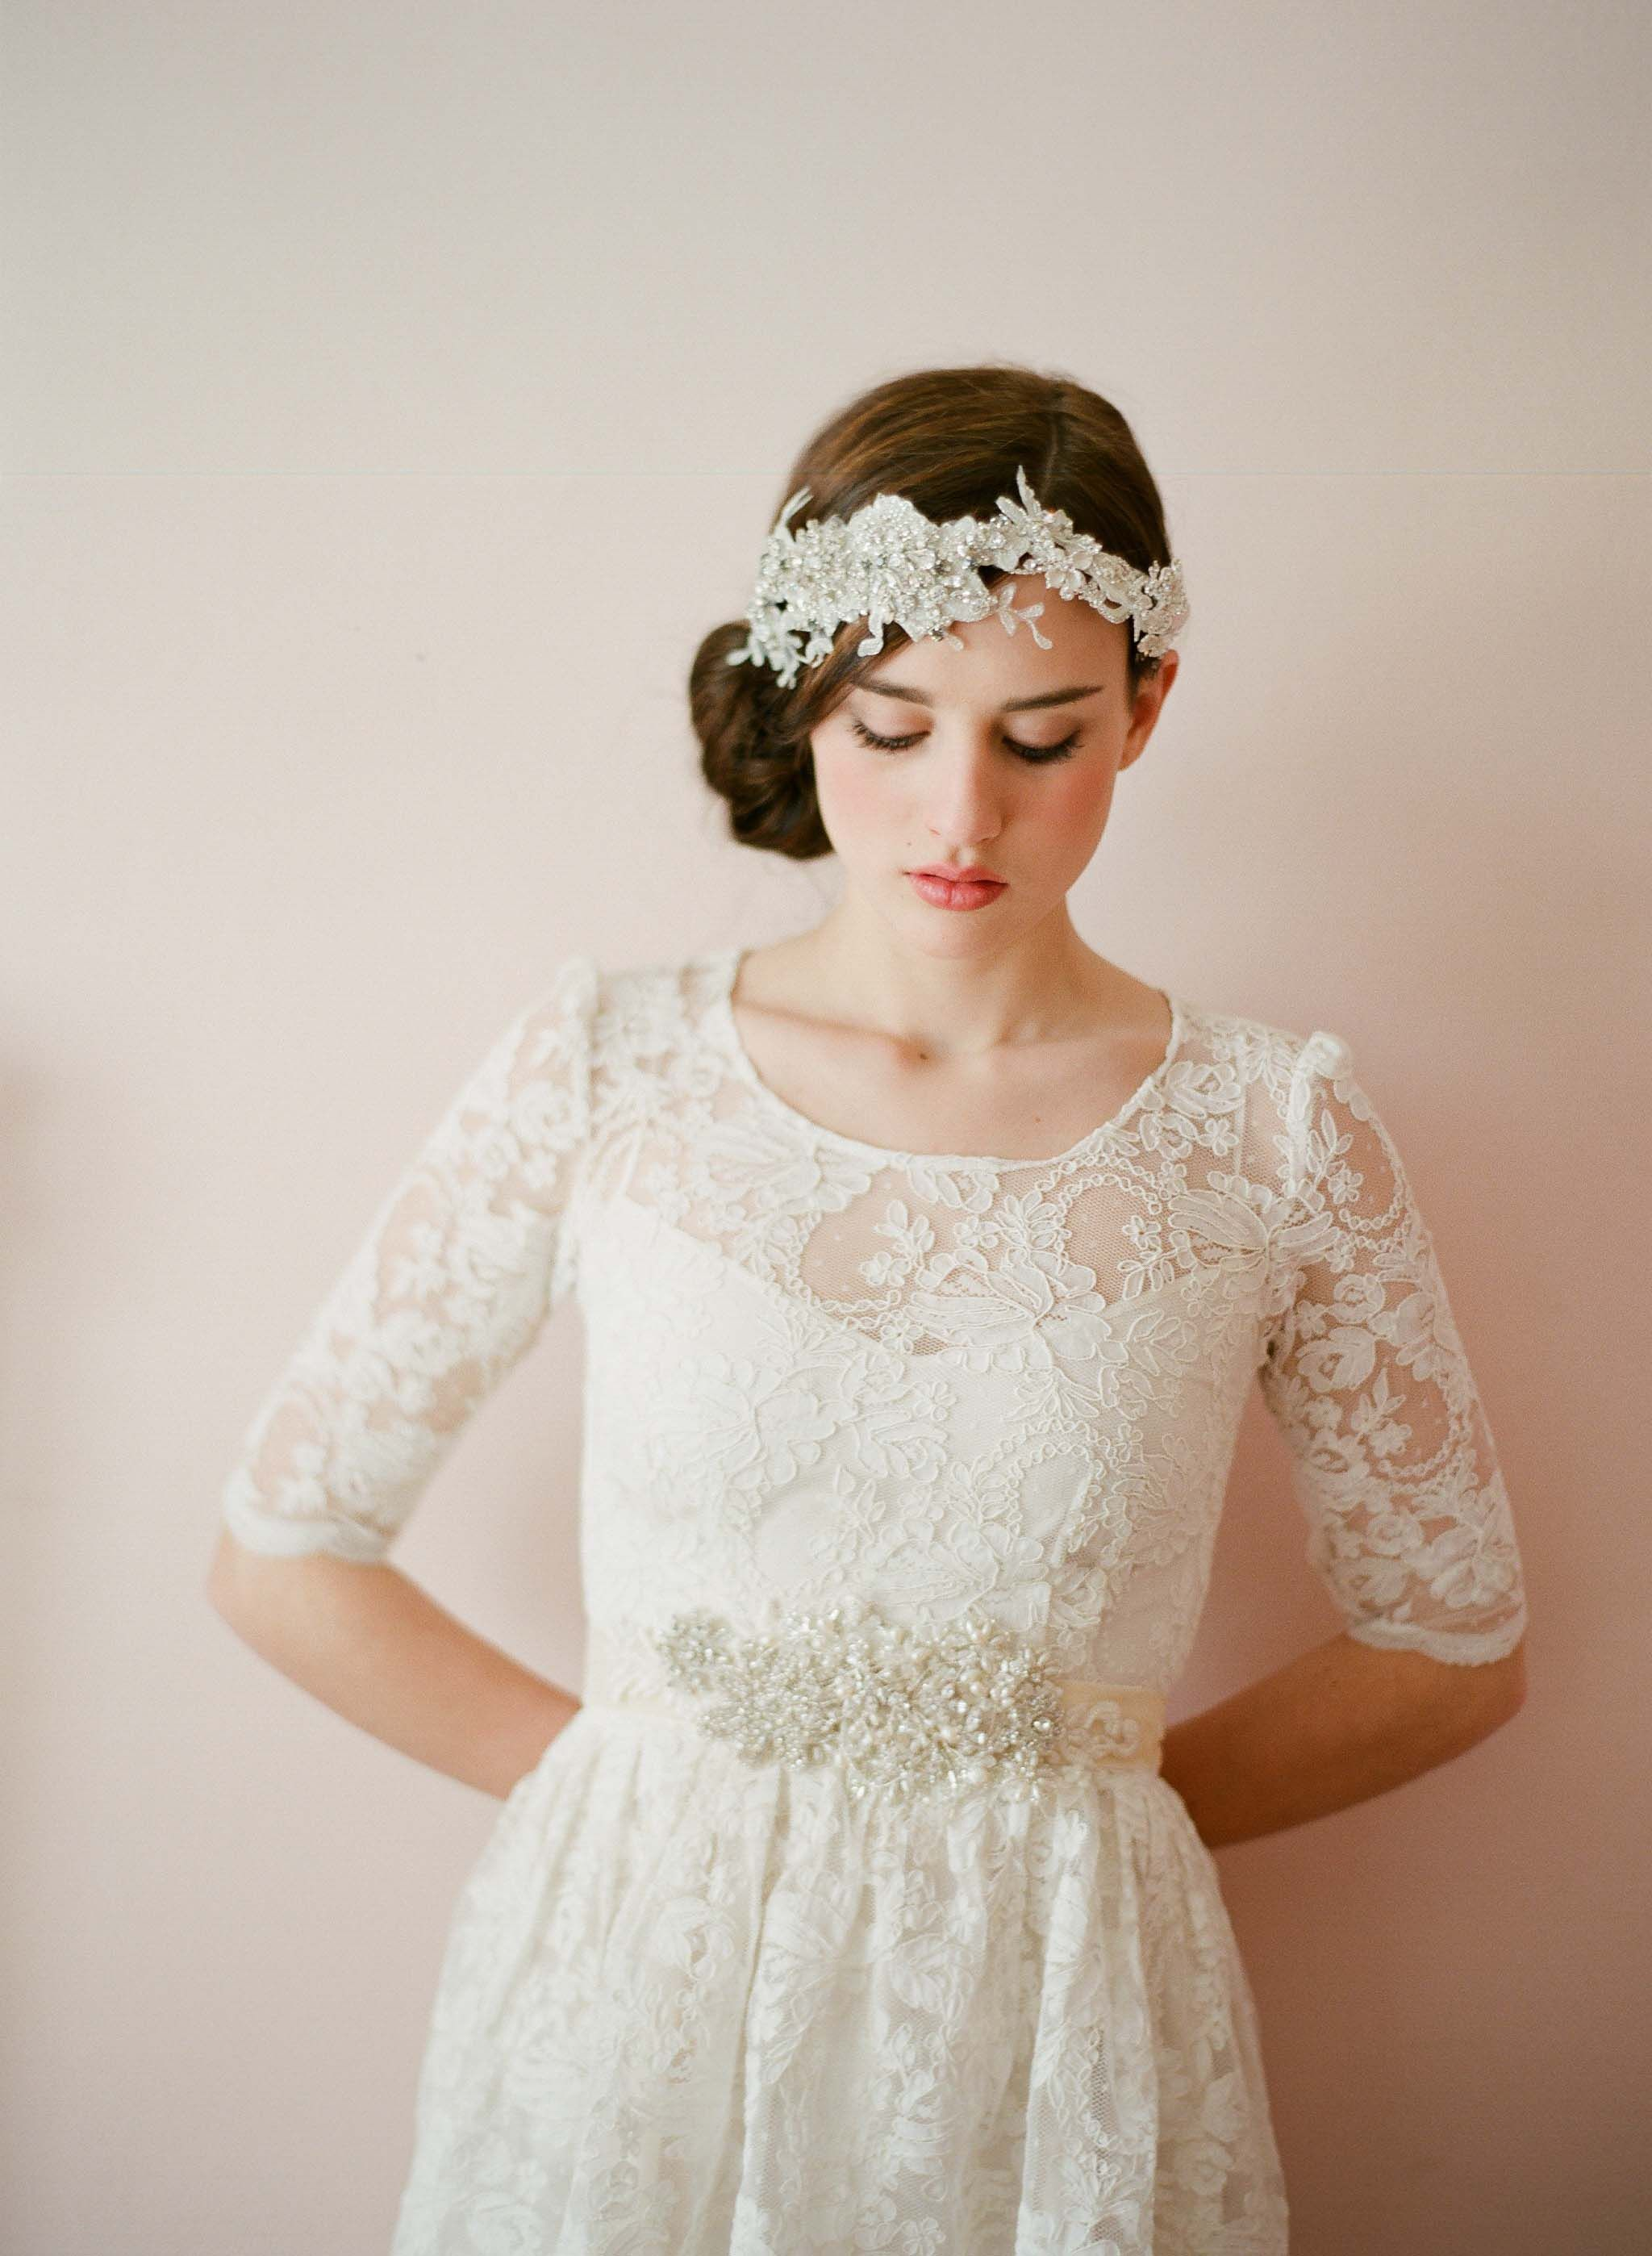 Wedding Accessories Off White Lace Dress